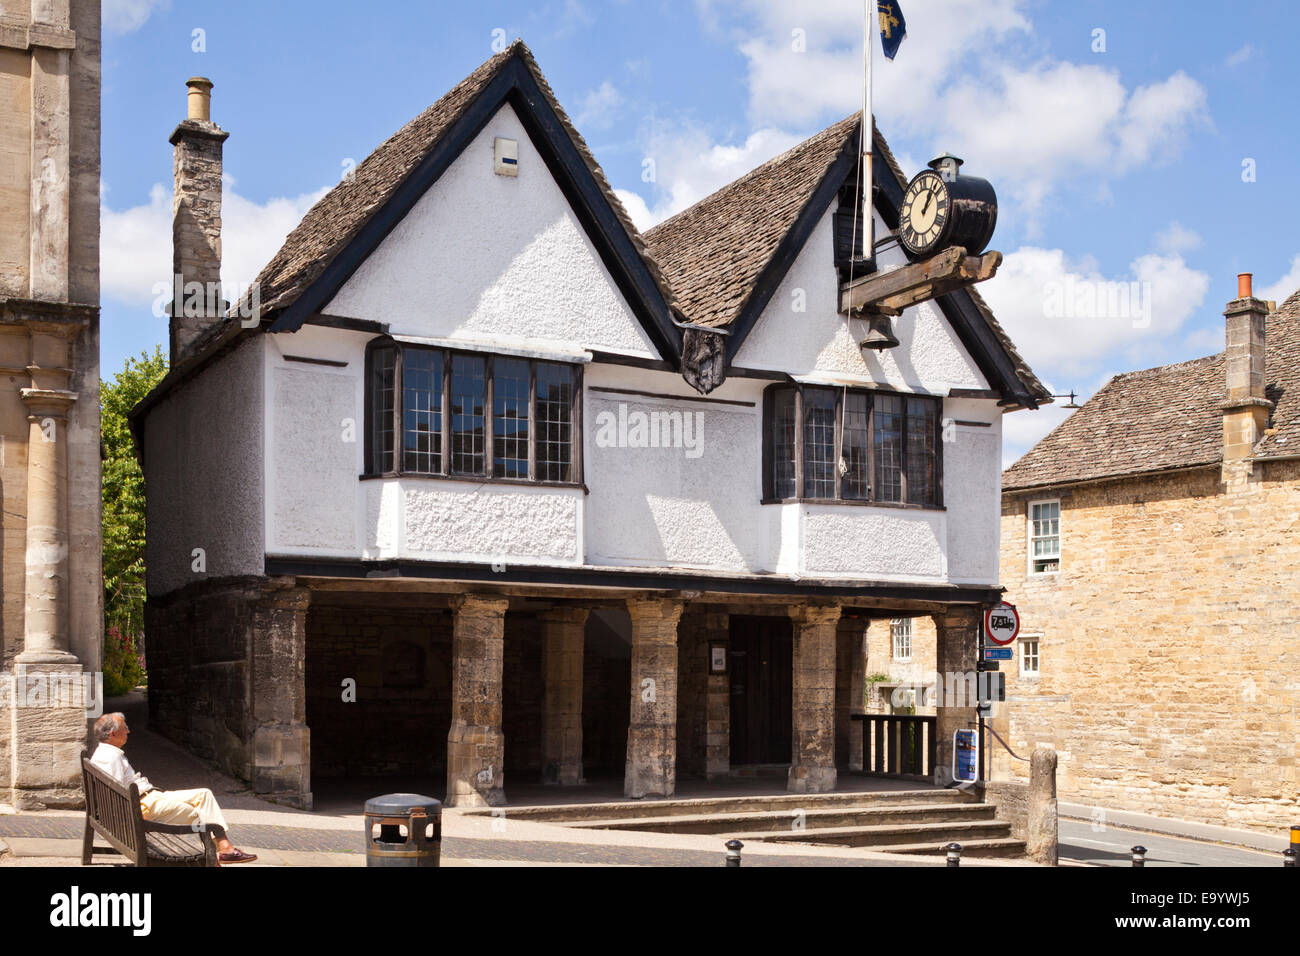 The Tolsey in the Cotswold town of Burford, Oxfordshire UK - The building dates from the early sixteenth century - Stock Image